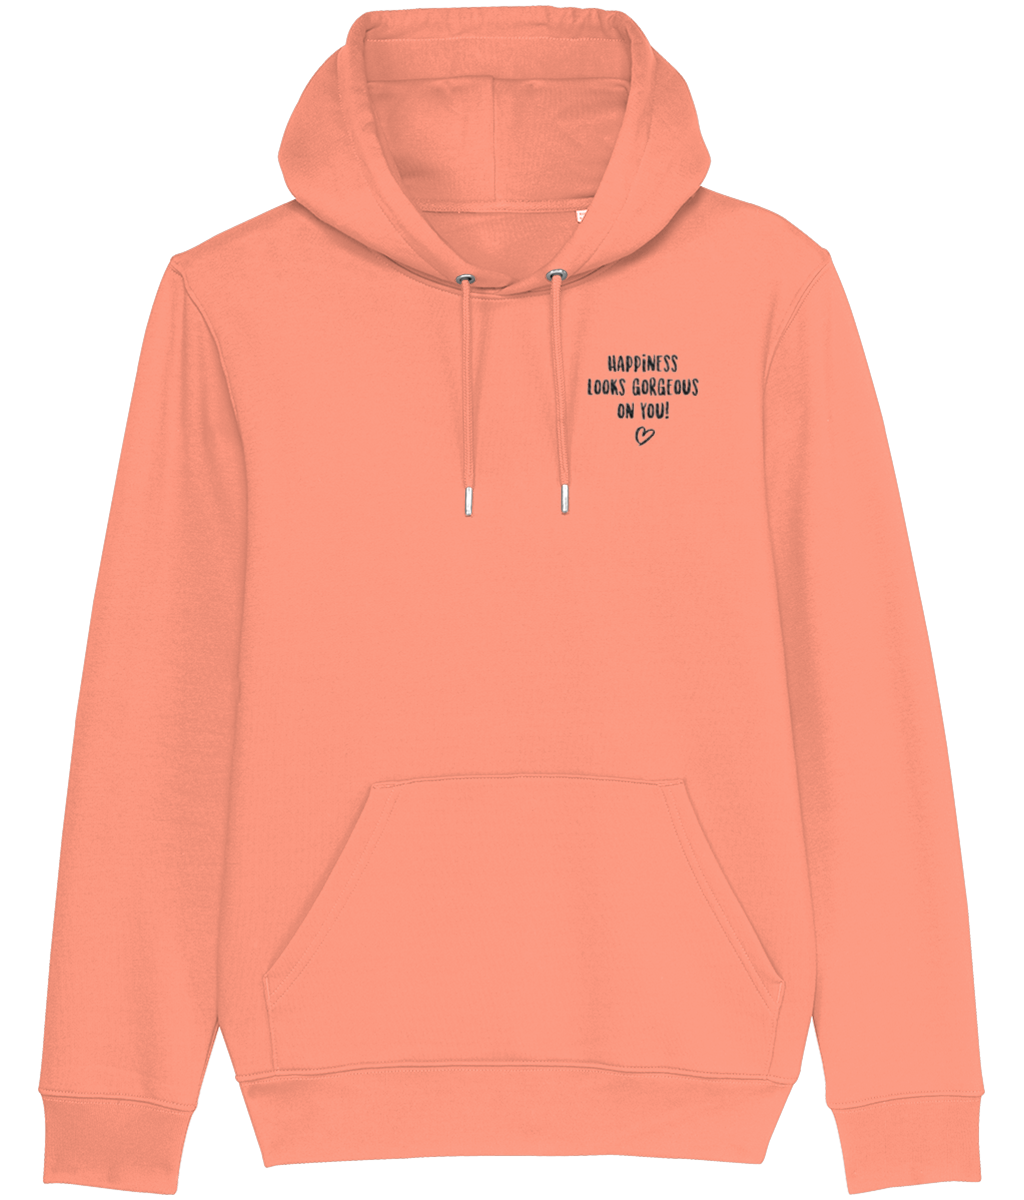 Organic HAPPINESS Hoodie (Embroidered)